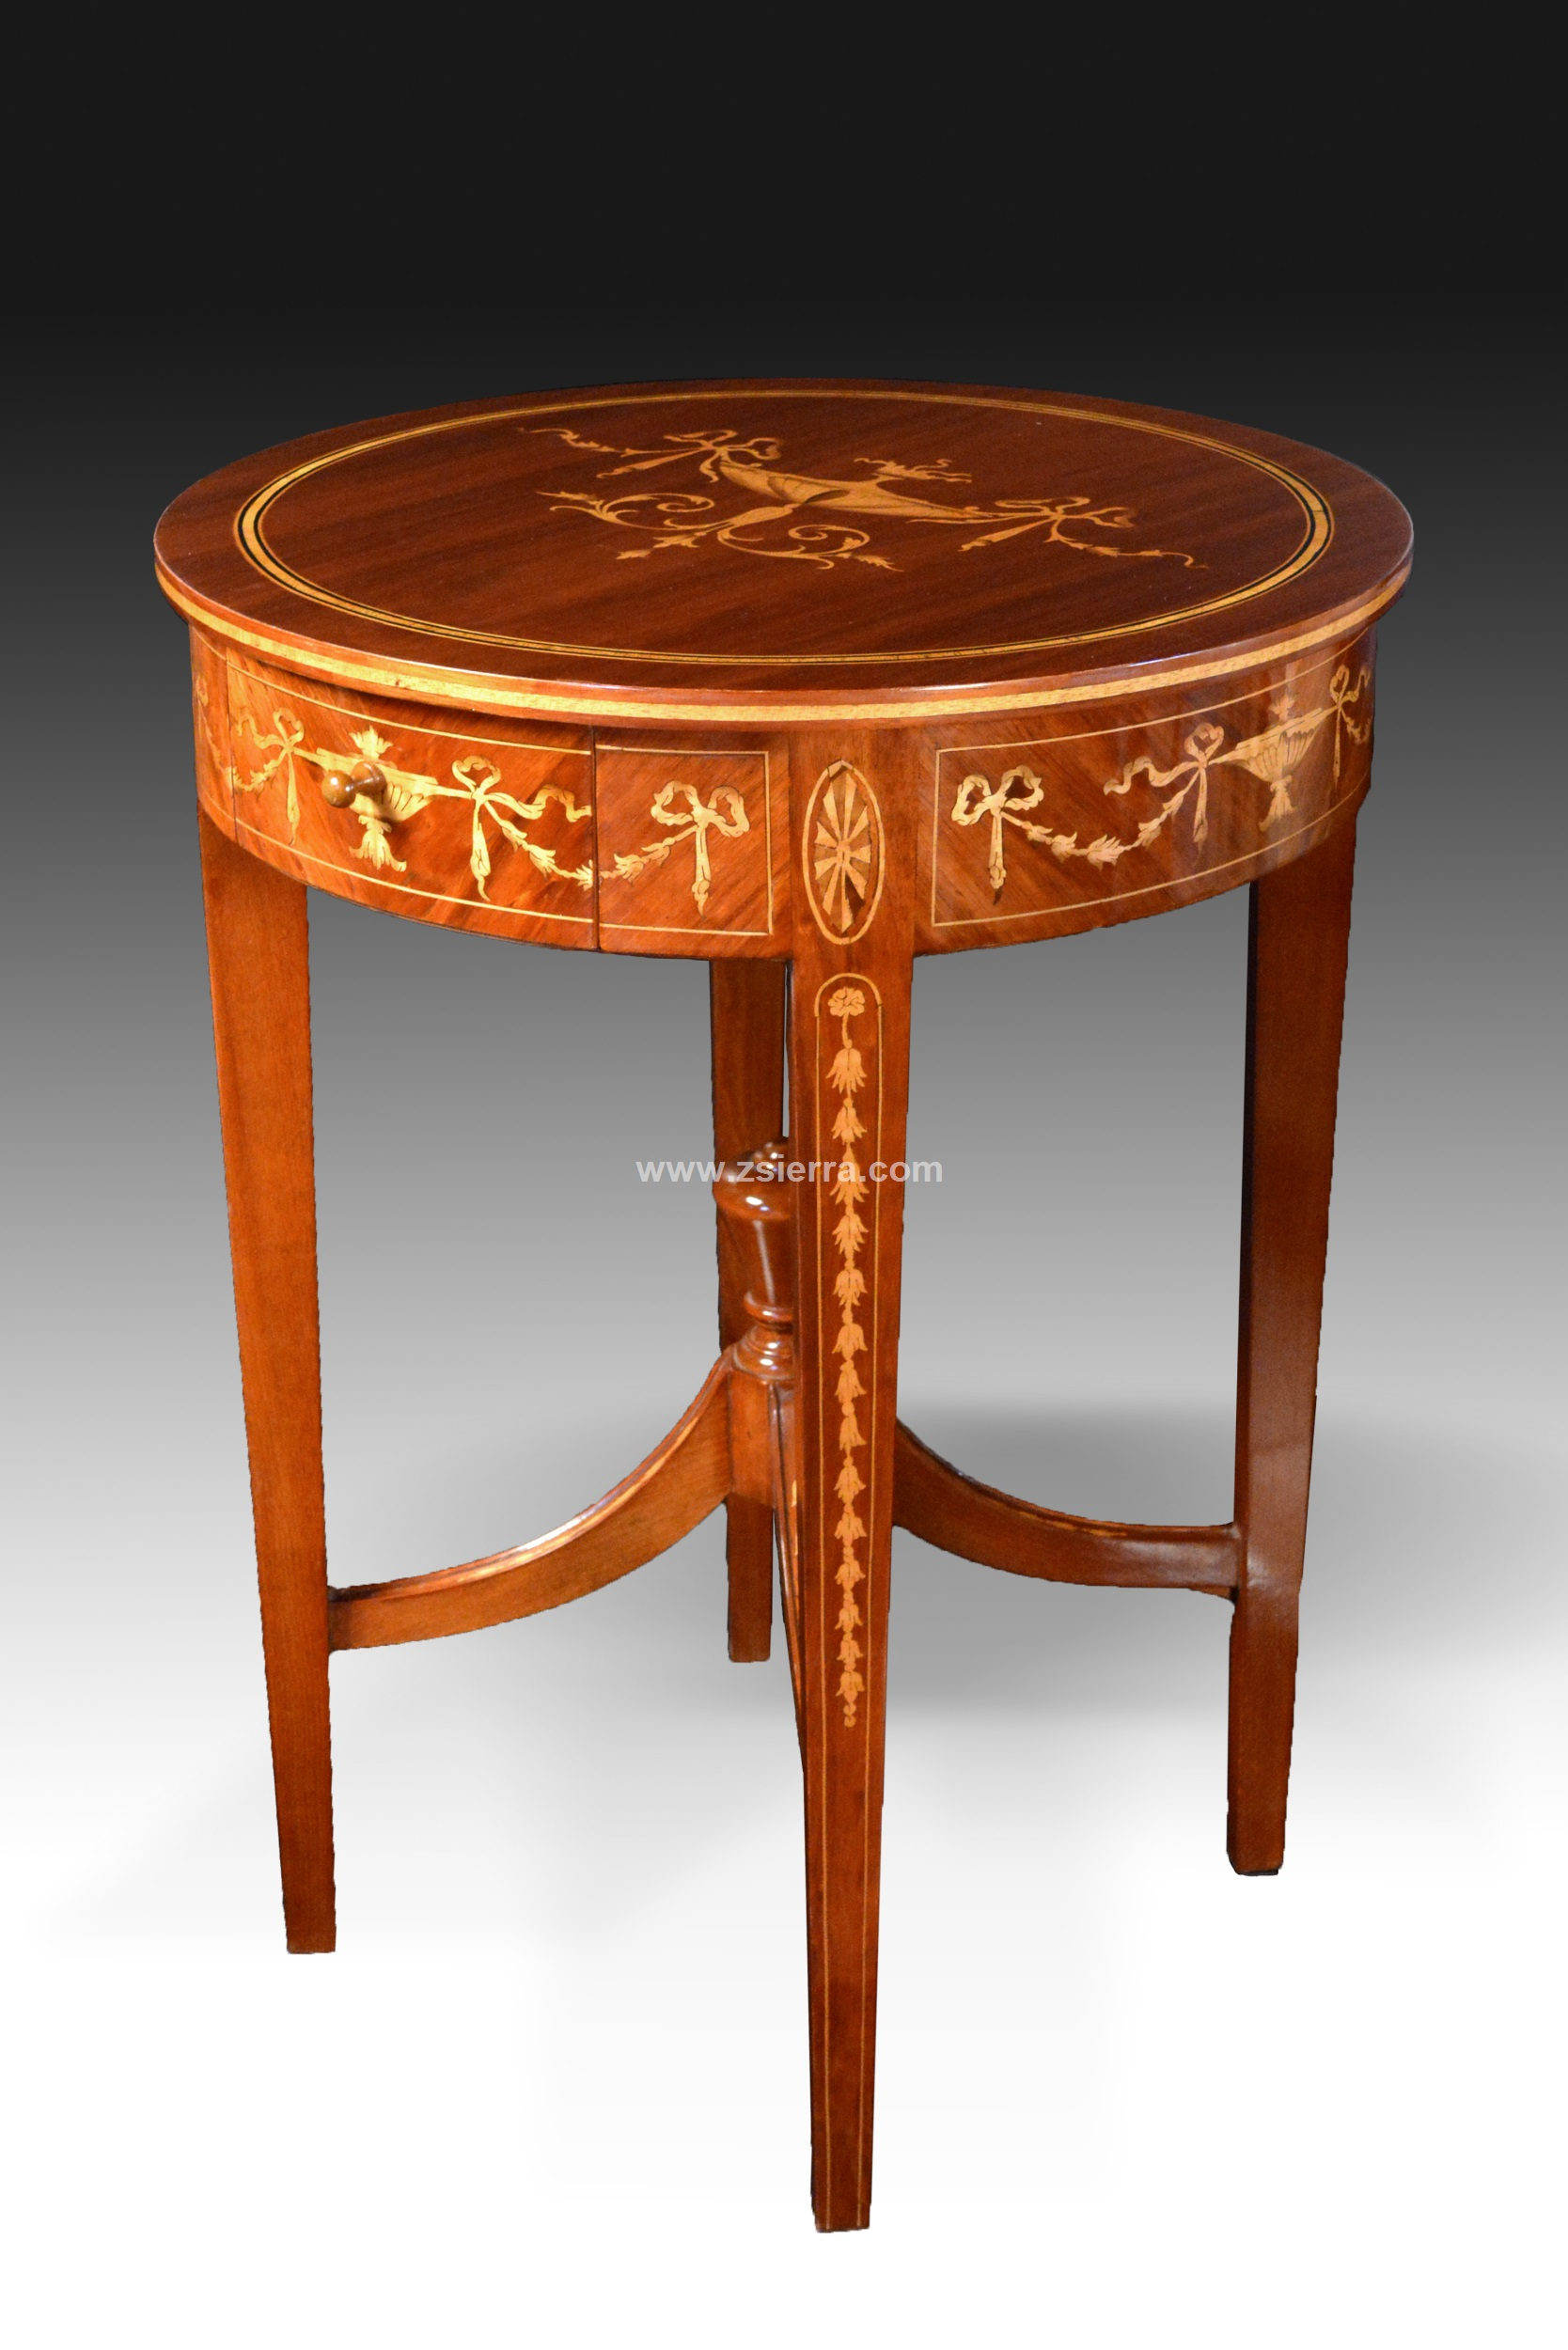 brass louis lacquer a ebony adam m lotfinder cks xvi and mounted commod japanese furniture details lot ormolu